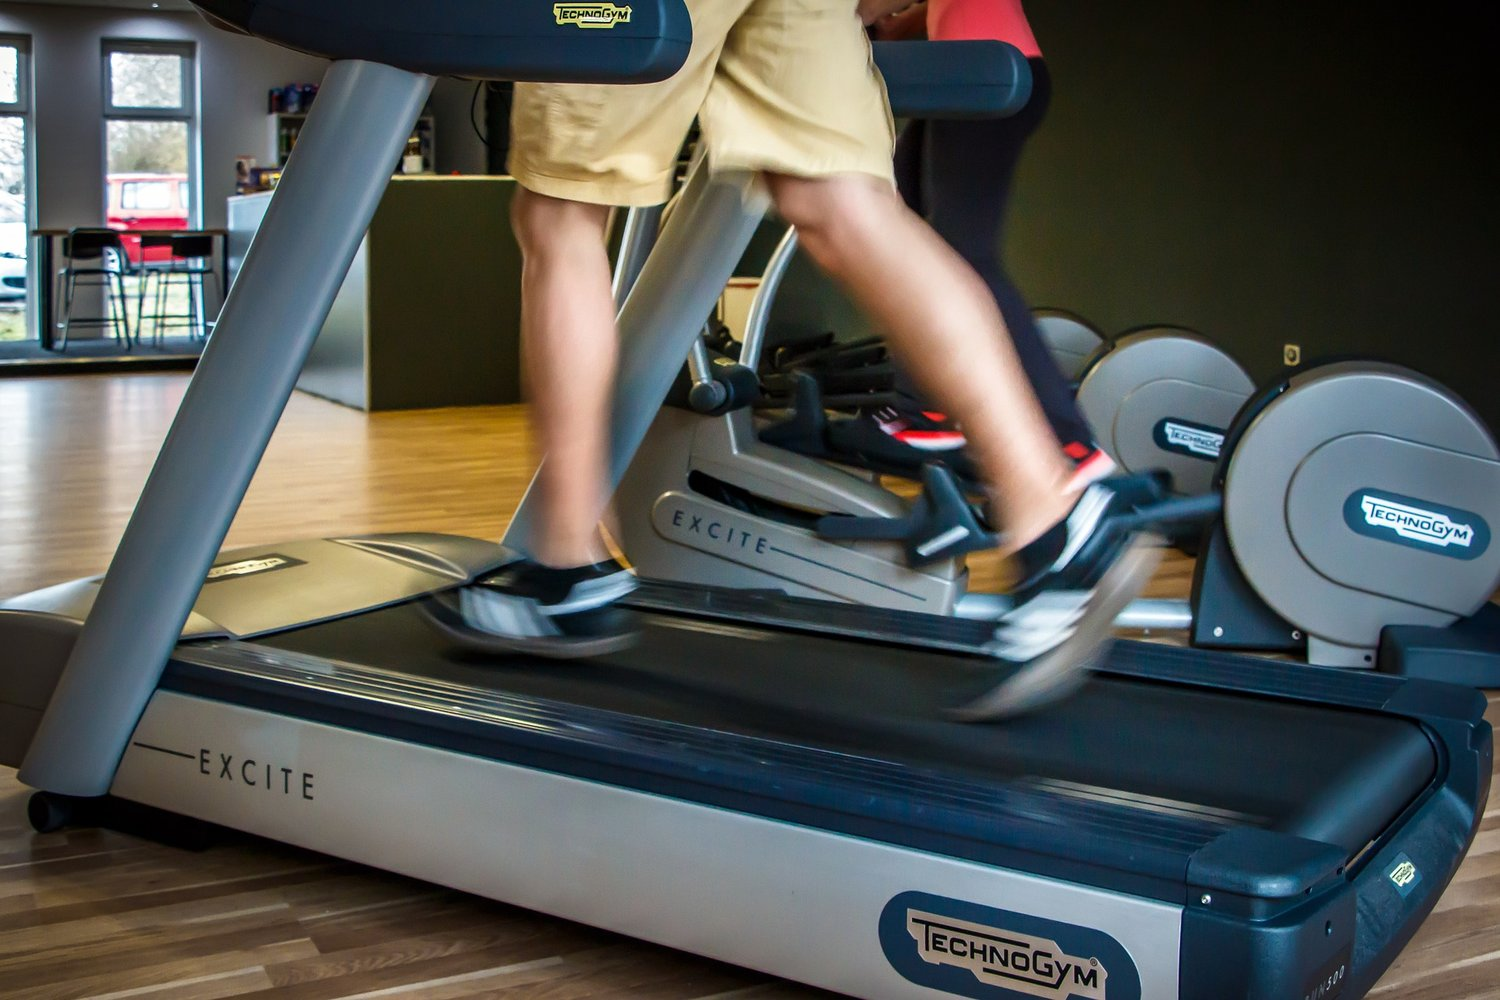 Article on physical therapy - The Treadmill Love It Or Leave It